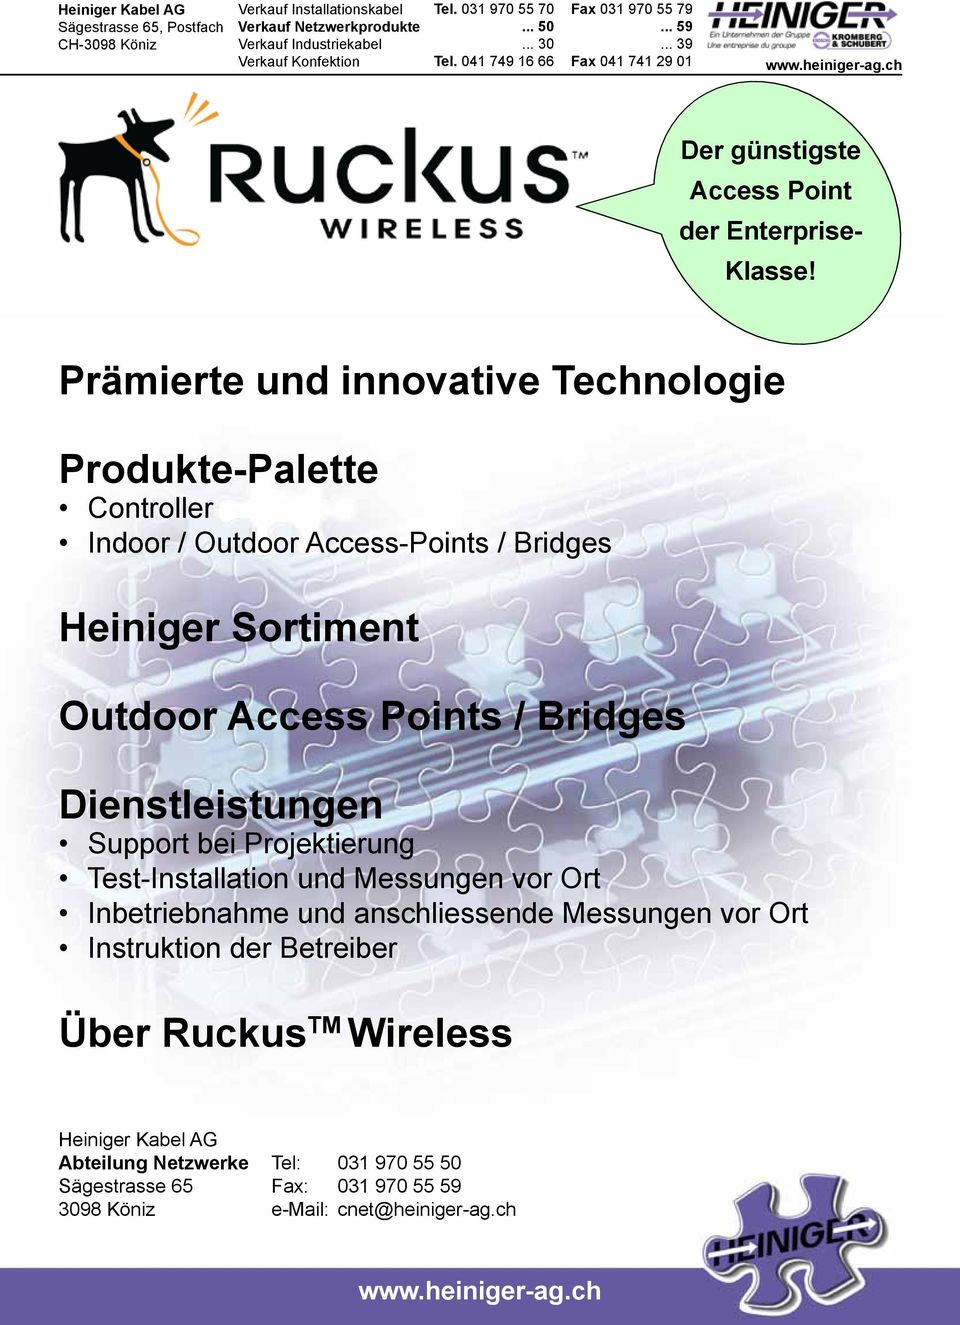 Prämierte und innovative Technologie Produkte-Palette Controller Indoor / Outdoor Access-Points / Bridges Heiniger Sortiment Outdoor Access Points / Bridges Dienstleistungen Support bei